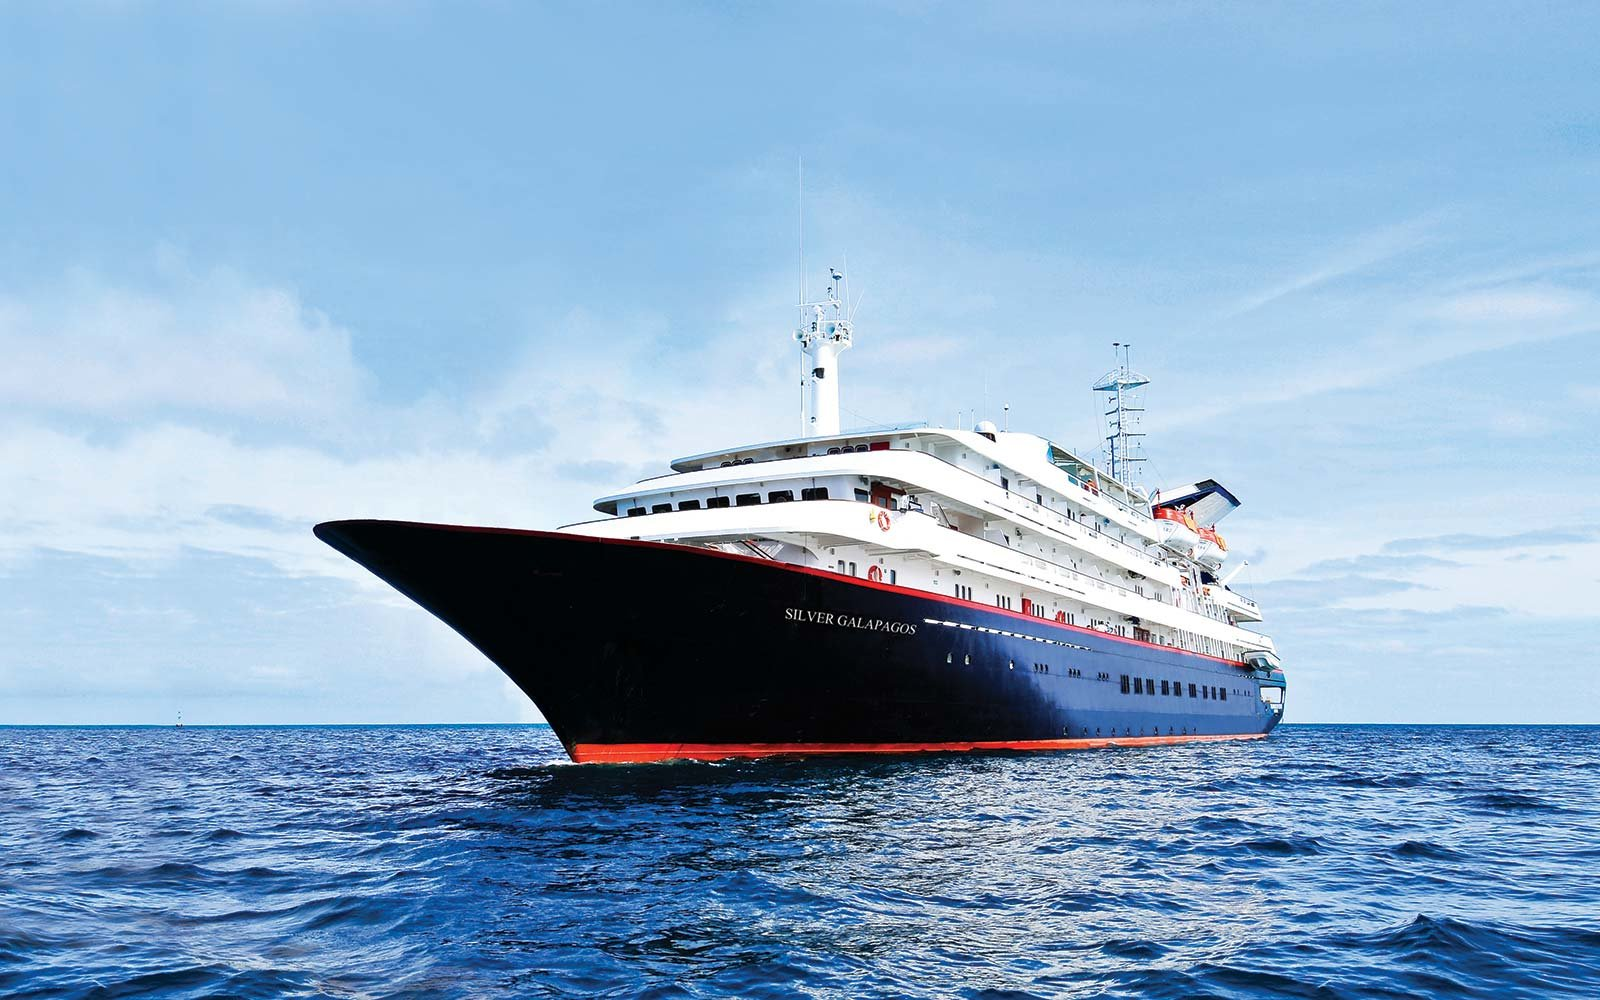 Five Things To Know About Silverseas Silver Galapagos